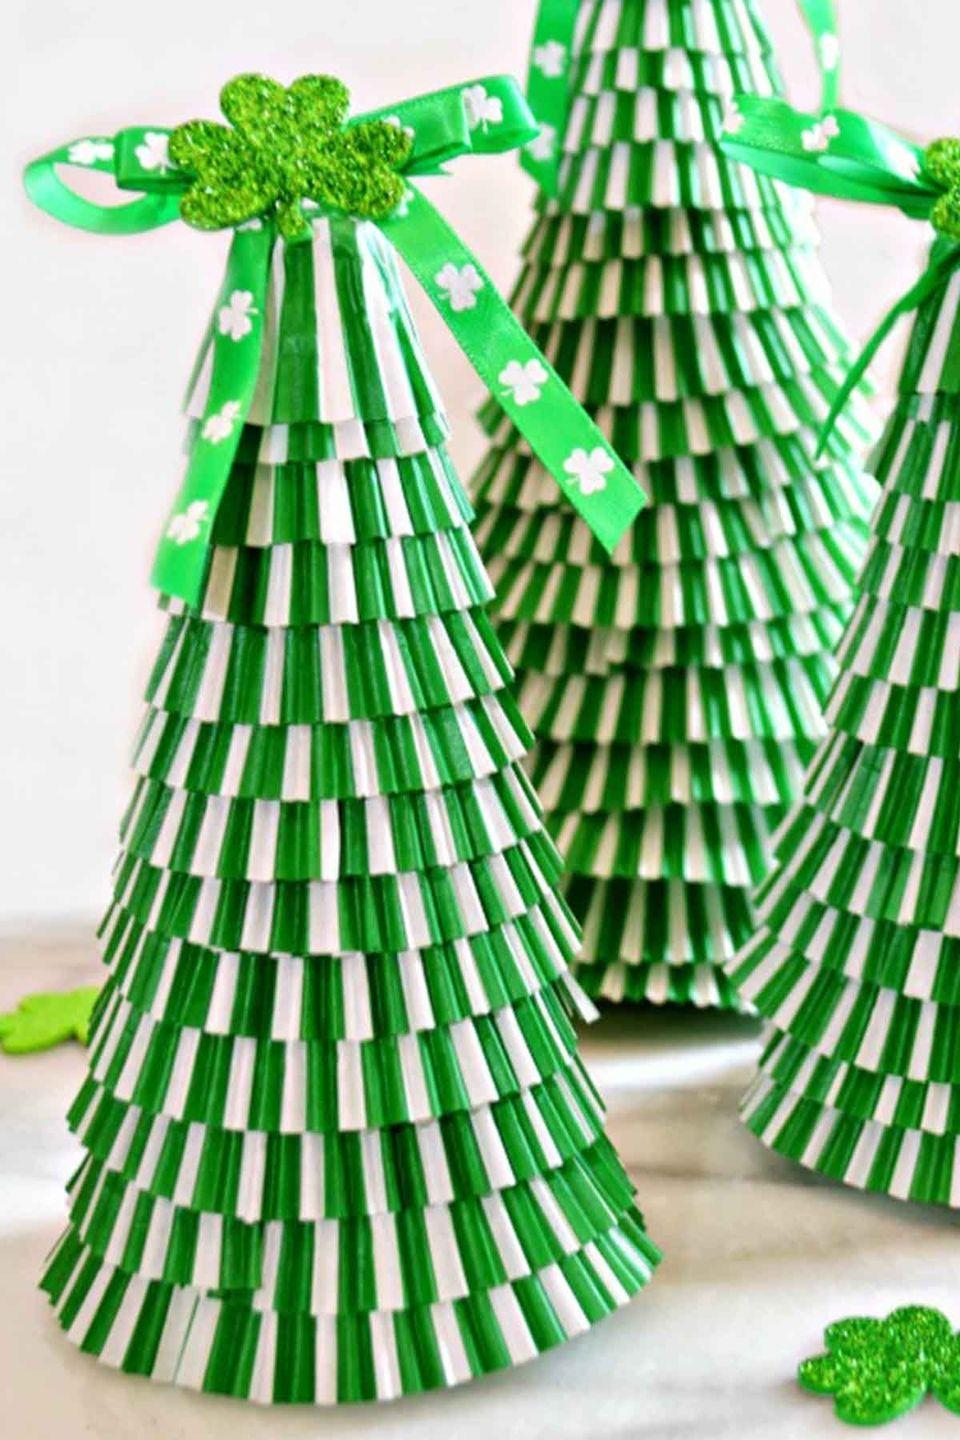 """<p>Paper trees are a common <a href=""""https://www.womansday.com/home/crafts-projects/how-to/g299/decorative-holiday-crafts-100780/"""" rel=""""nofollow noopener"""" target=""""_blank"""" data-ylk=""""slk:Christmas craft"""" class=""""link rapid-noclick-resp"""">Christmas craft</a>, but why not give them a St. Paddy's spin too? These bright pieces are fun to put together.</p><p><em>Get the tutorial at <a href=""""http://www.littlemisscelebration.com/2015/02/23/cupcake-liner-st-patricks-day-trees/?utm_source=feedburner&utm_medium=email&utm_campaign=Feed:+Littlemisscelebration+(Little+Miss+Celebration)"""" rel=""""nofollow noopener"""" target=""""_blank"""" data-ylk=""""slk:Little Miss Celebration"""" class=""""link rapid-noclick-resp"""">Little Miss Celebration</a>.</em> </p>"""